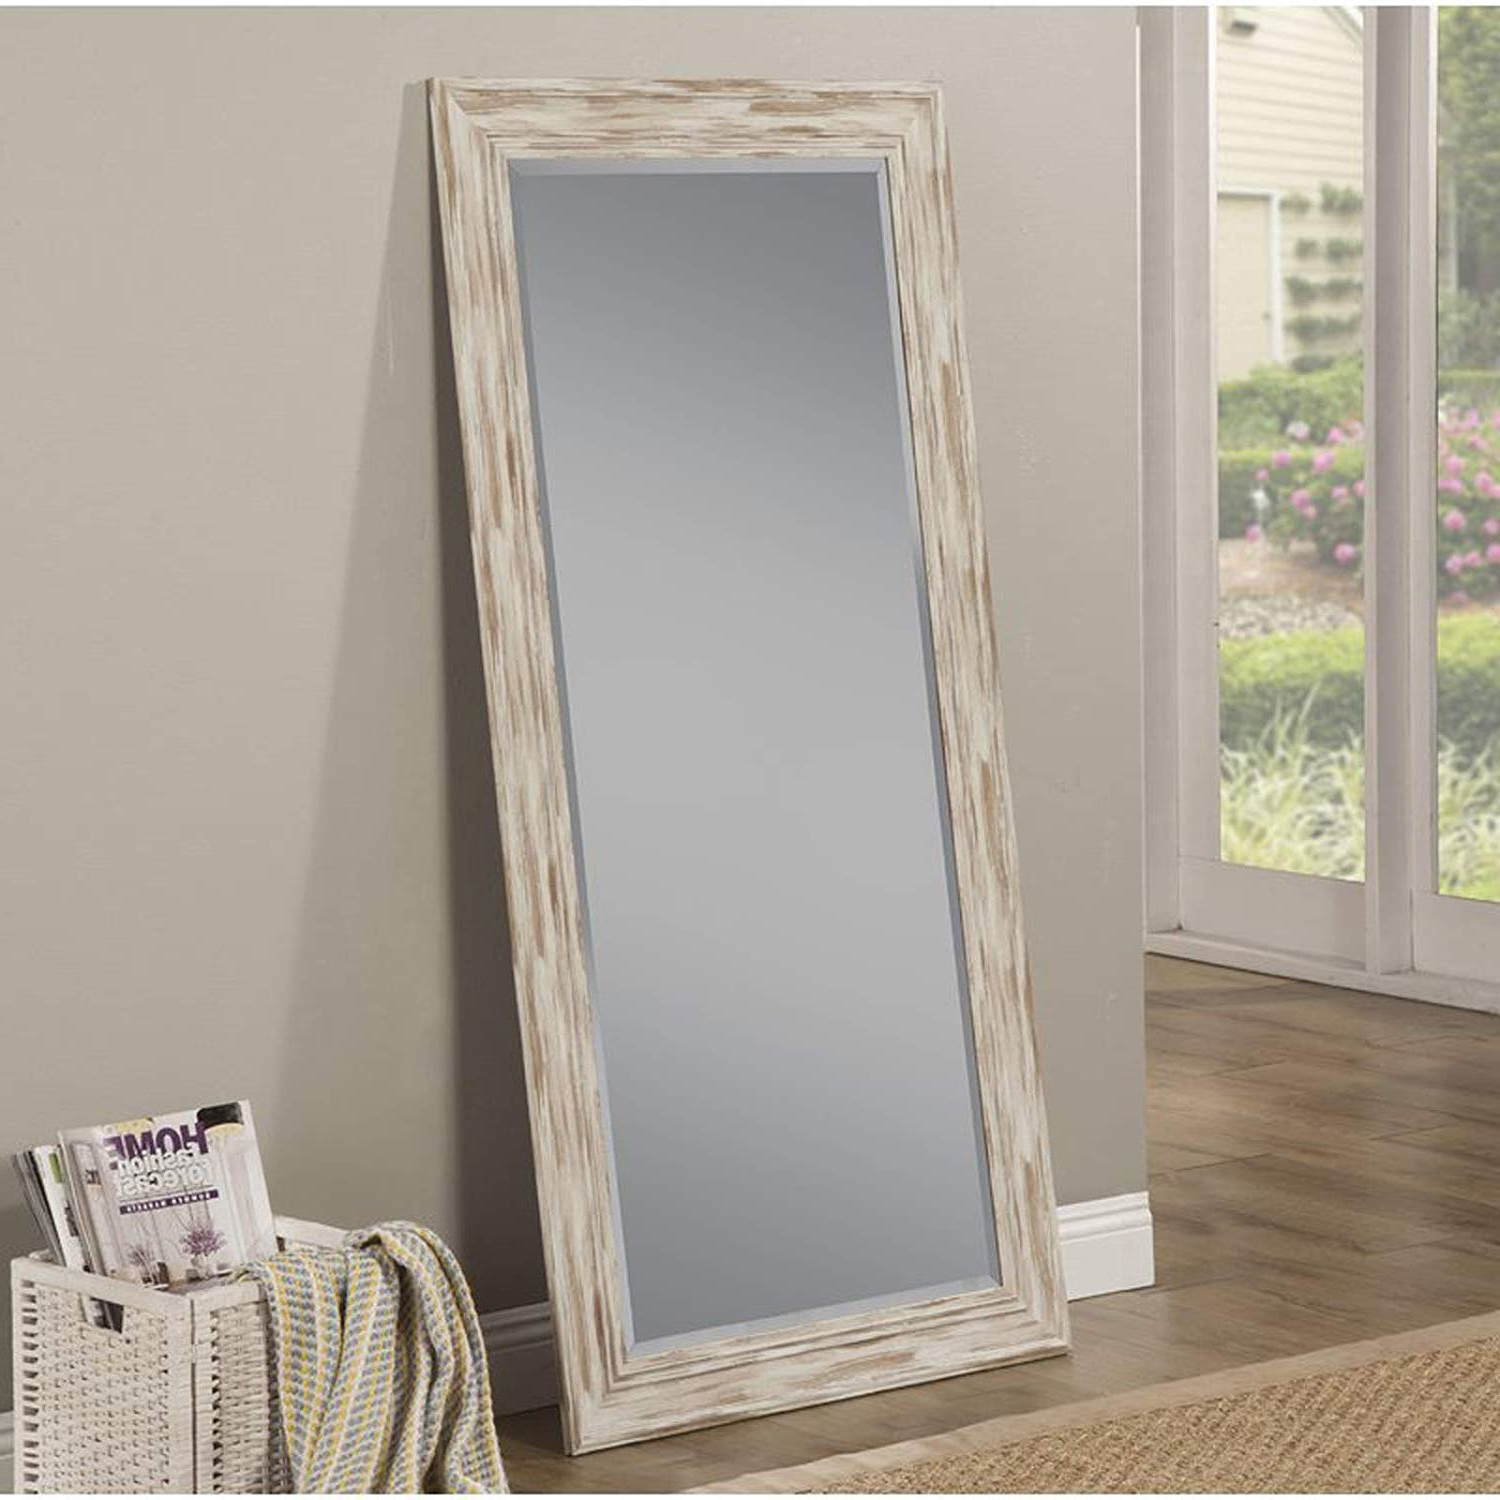 Full Length Wall Mirror – Rustic Rectangular Shape Horizontal & Vertical Mirror – Can Be Use In Living Room, Bedroom, Entryway Or Bathroom (antique Throughout Famous Floor Length Wall Mirrors (View 12 of 20)